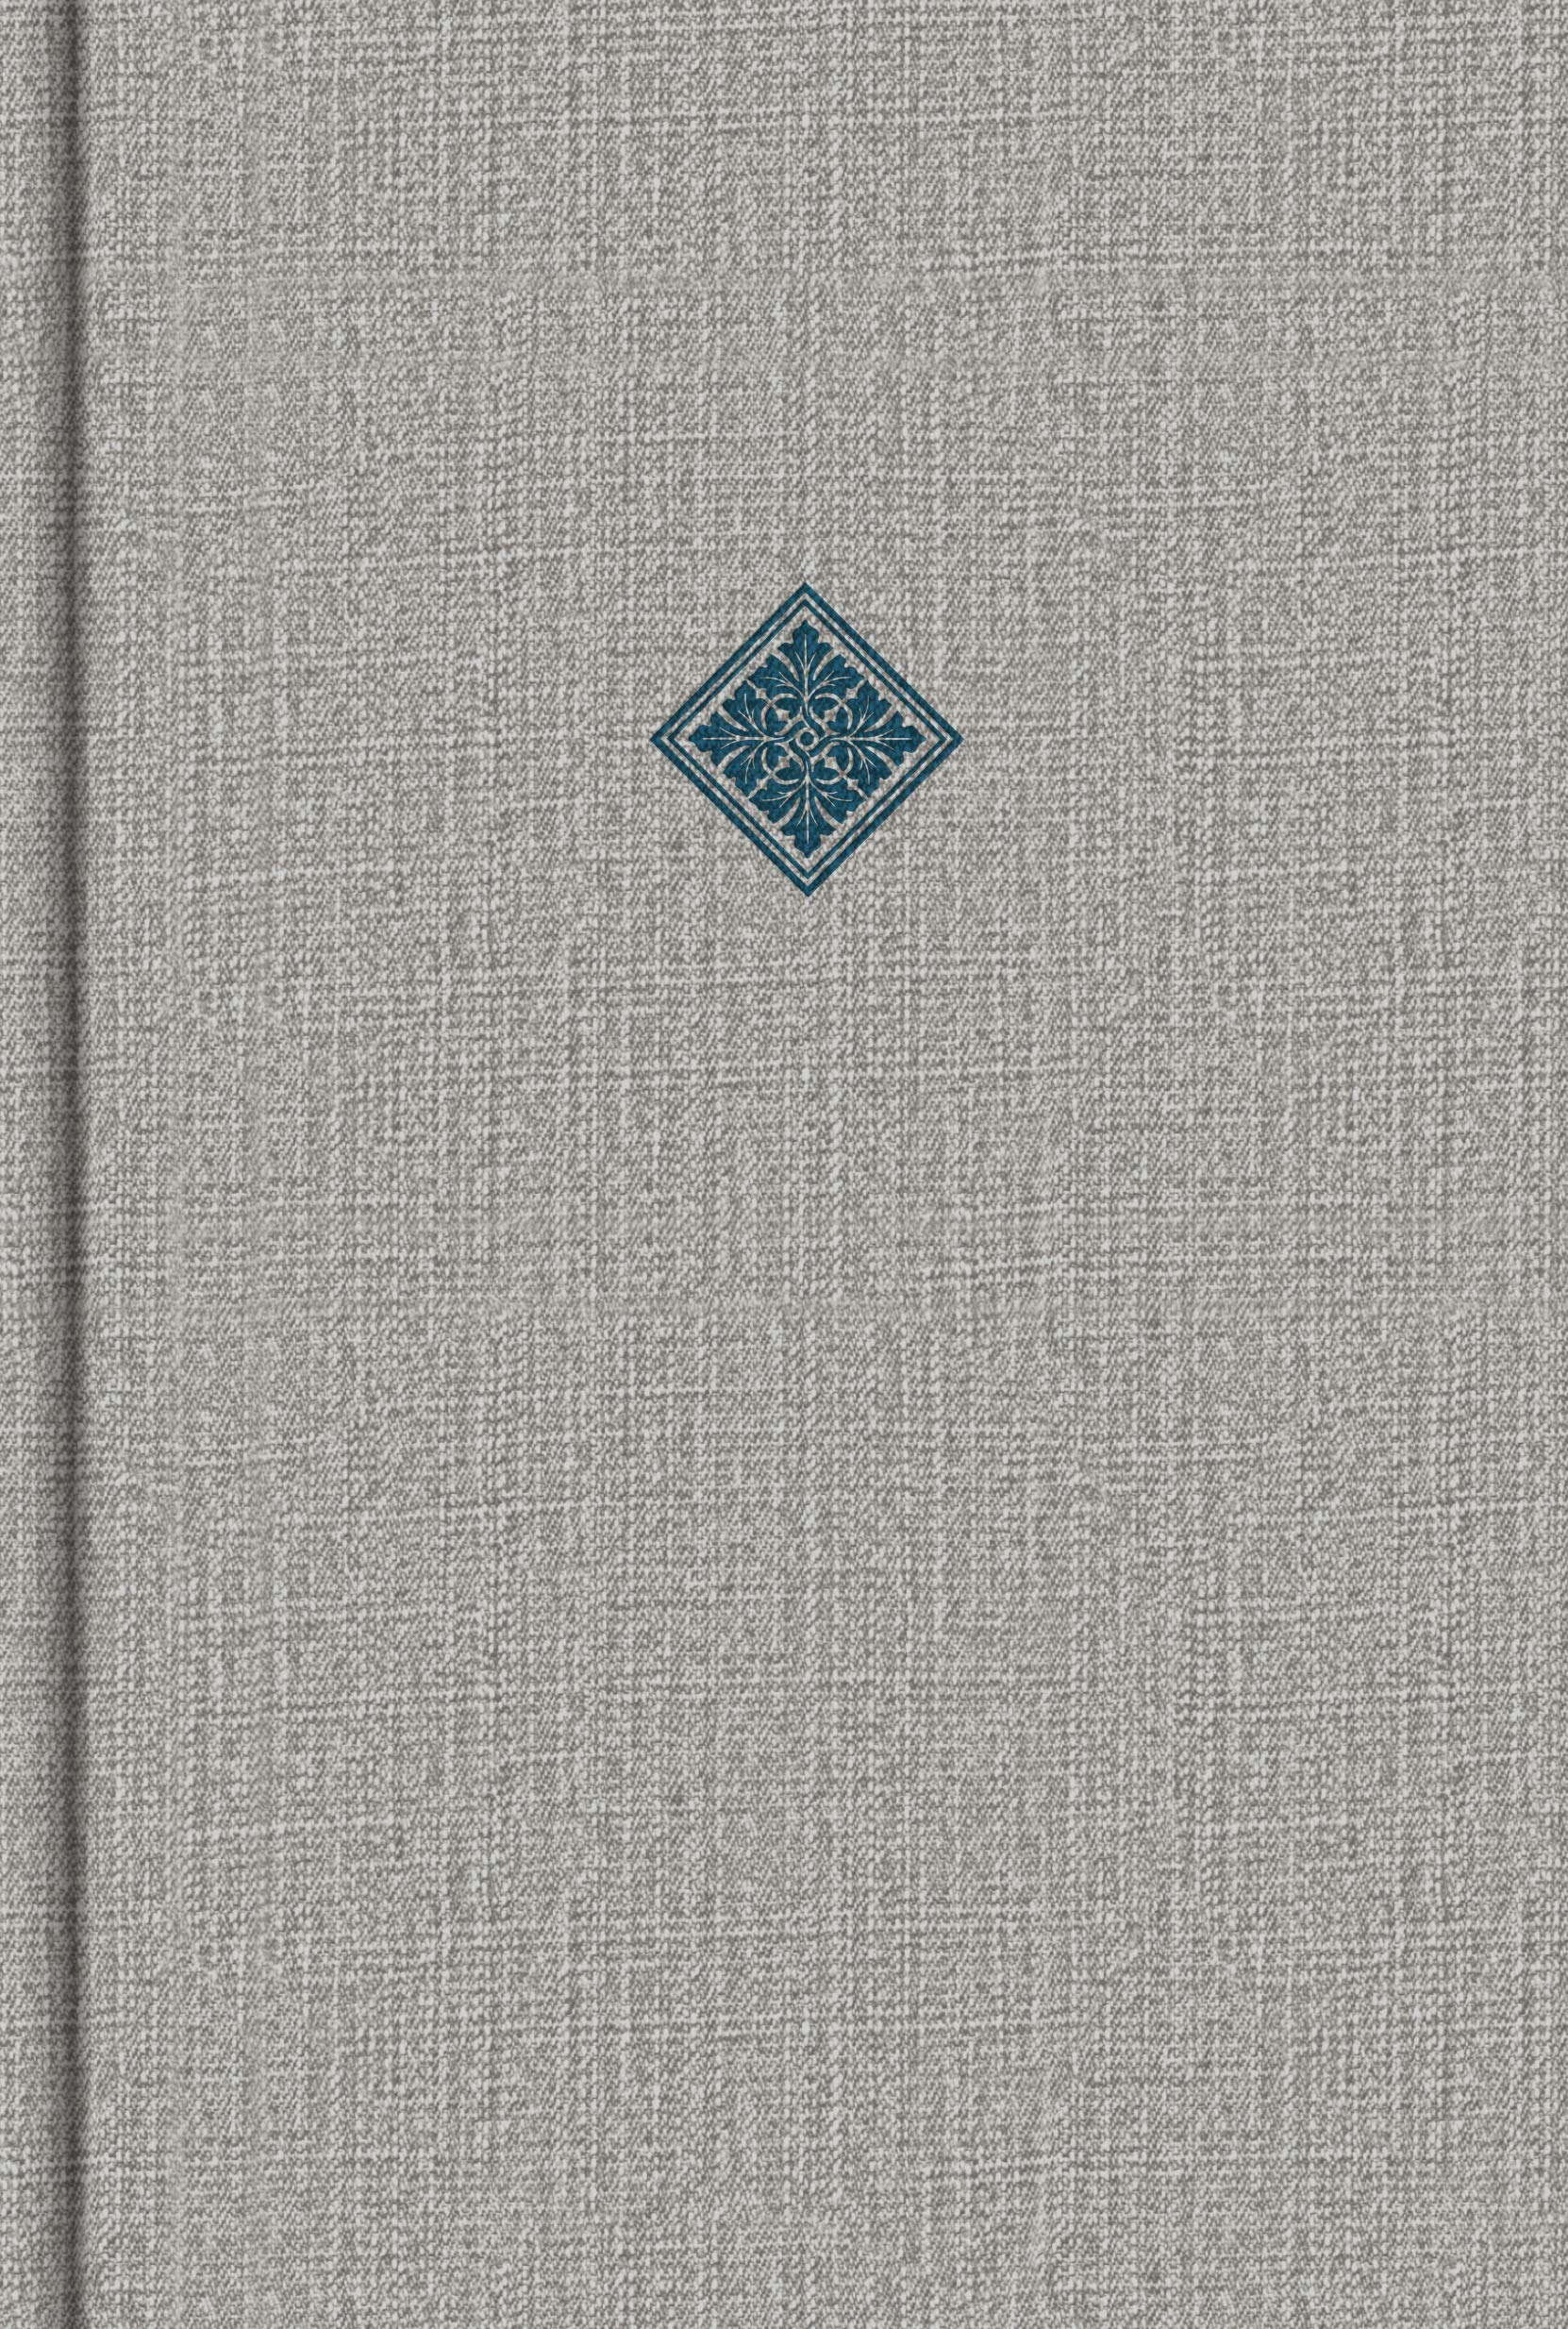 Download CSB Reader's Bible, Gray Cloth Over Board ebook